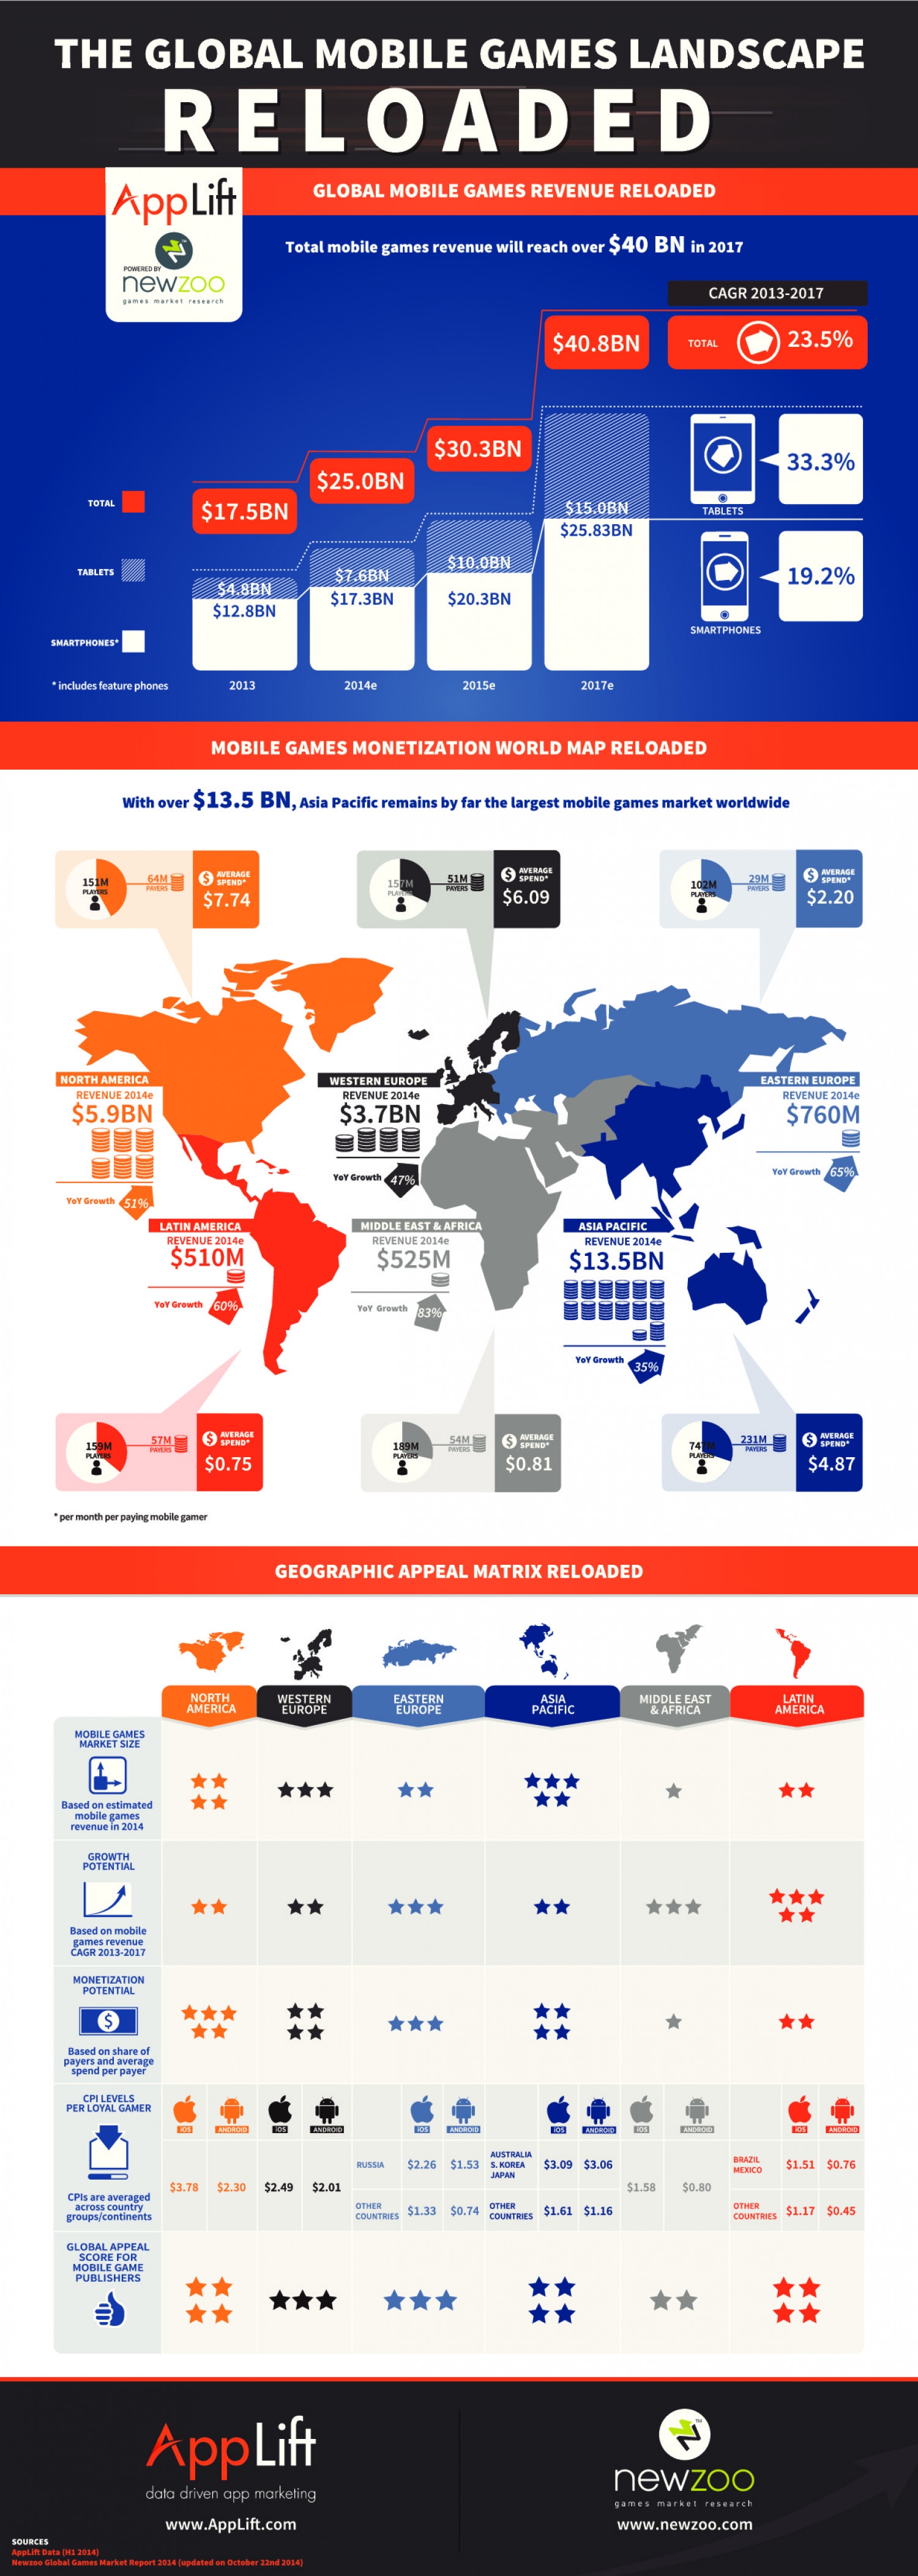 The Global Mobile Games Landscape RELOADED Infographic